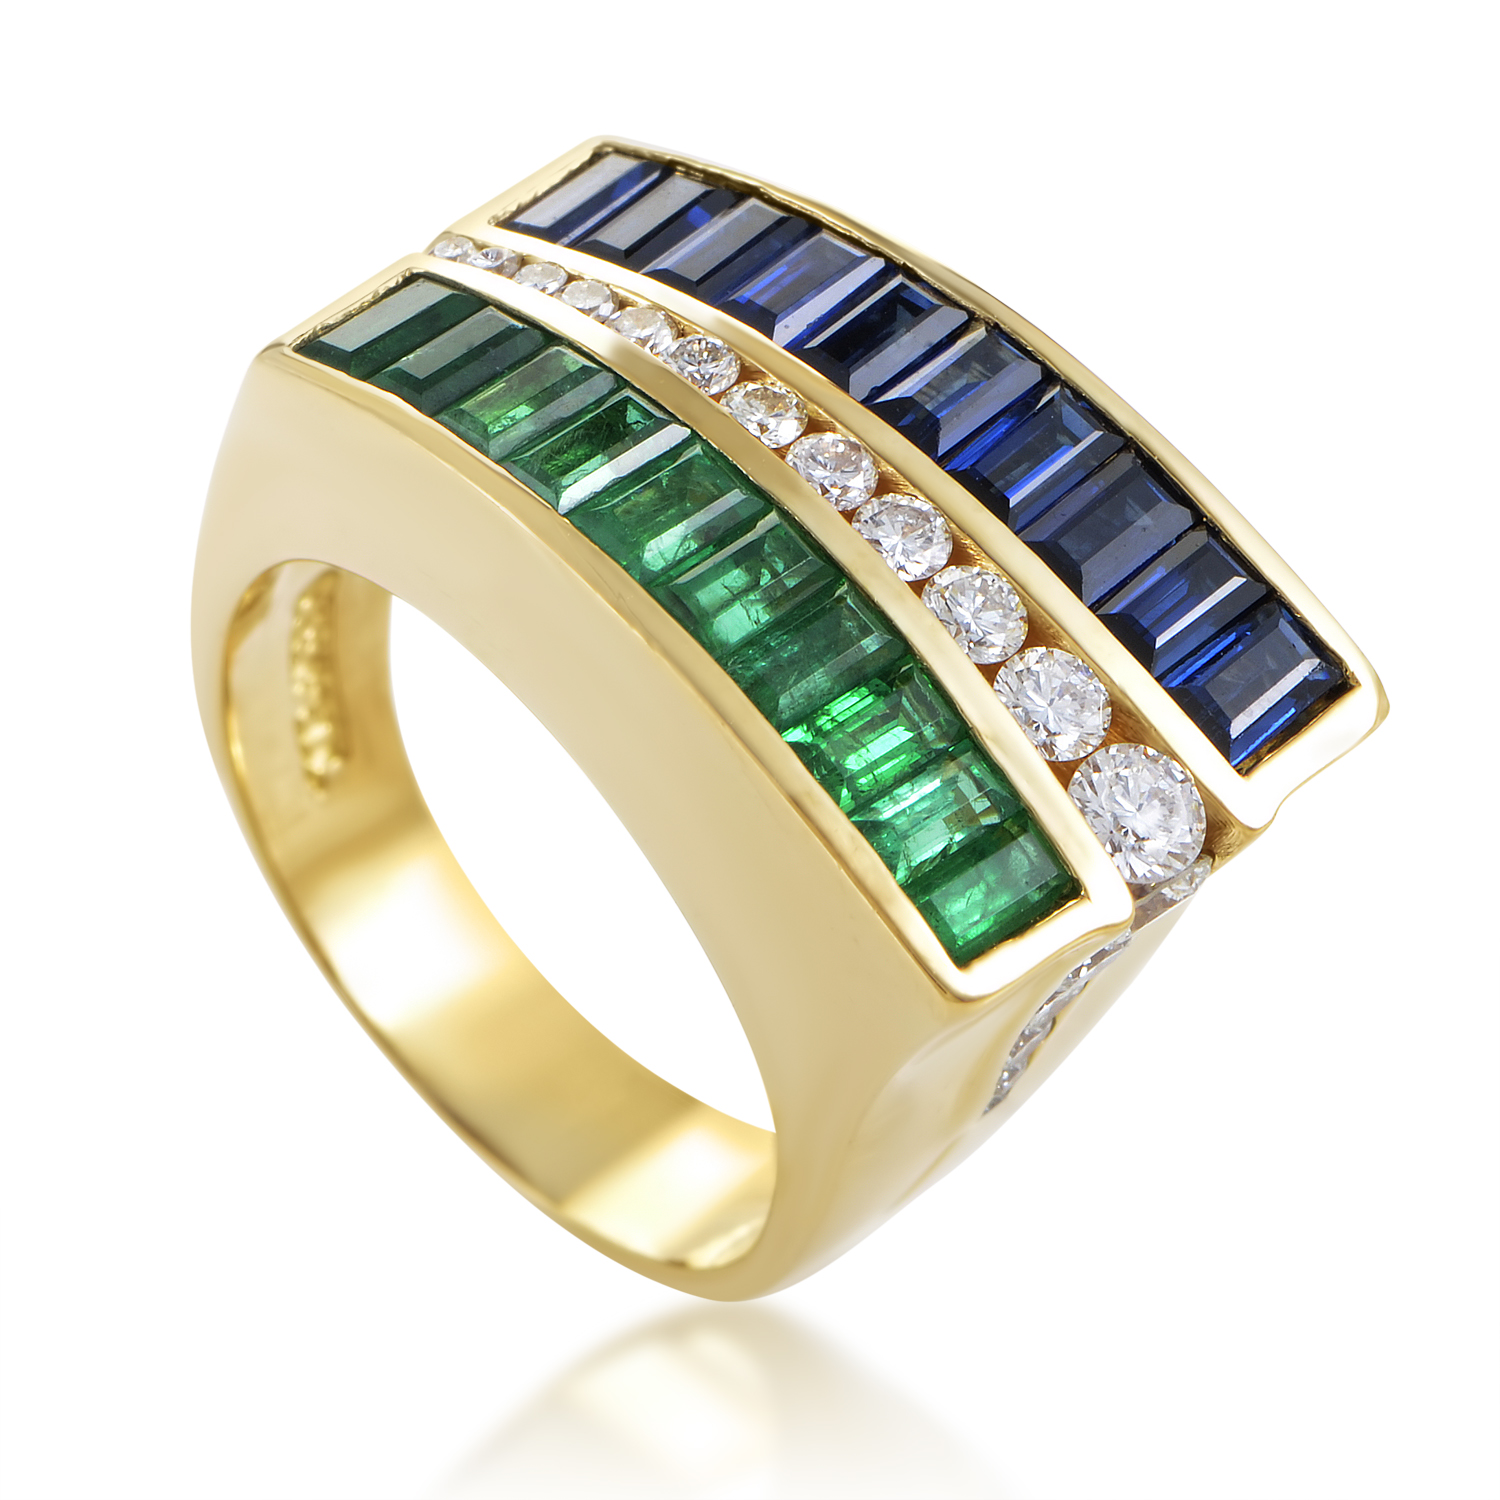 Charles Krypell Women's 18K Yellow Gold Precious Gemstone Cocktail Ring